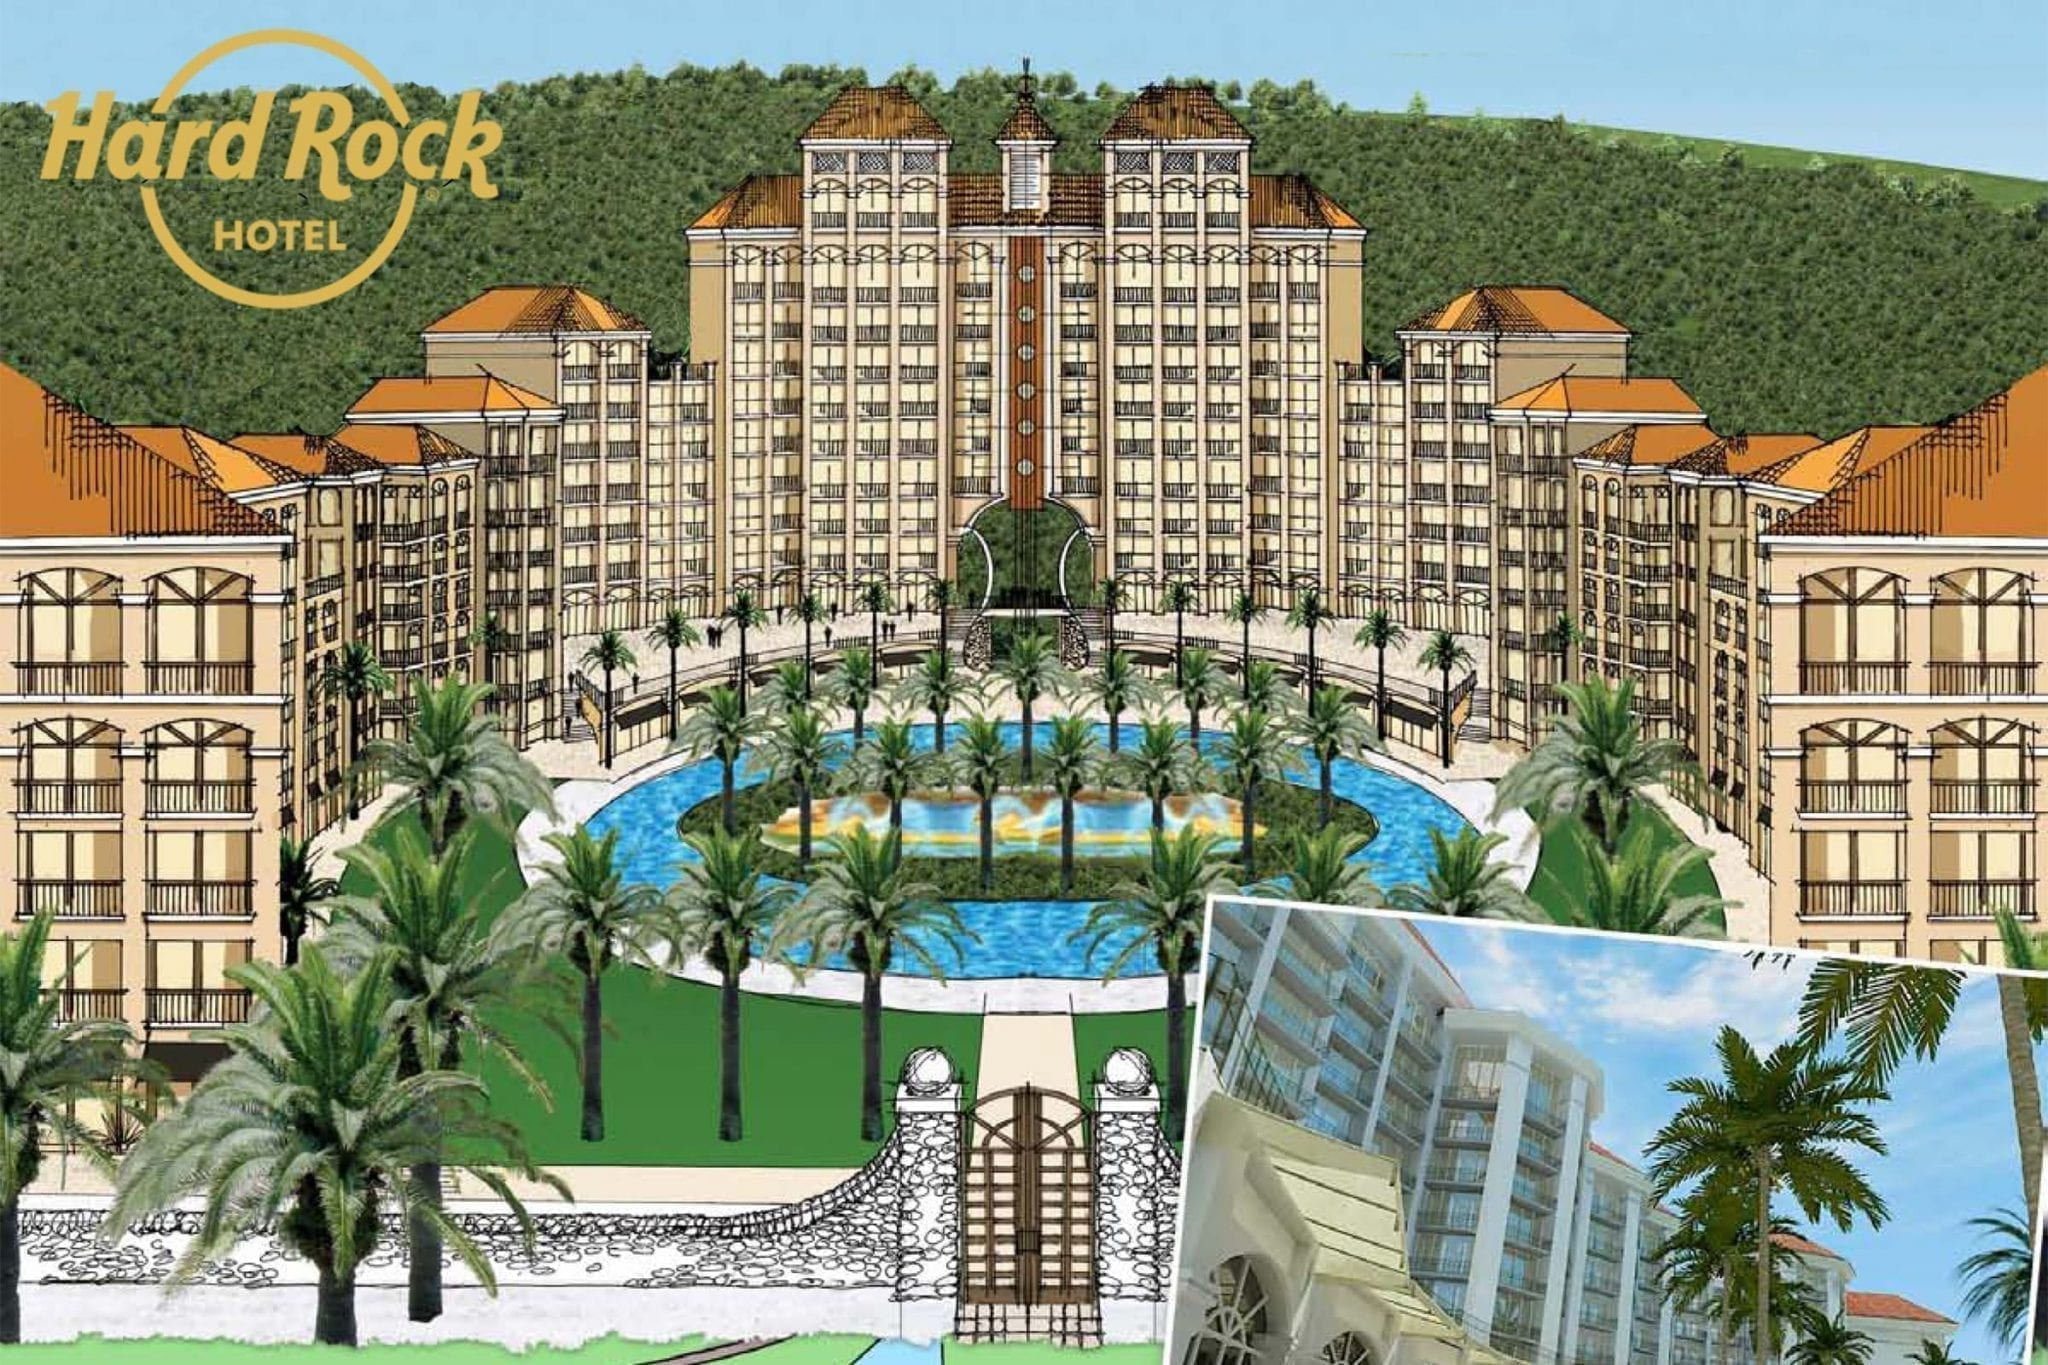 Hard Rock Hotel Plans and Masterplanning by MWT Hotel & Resort Architect